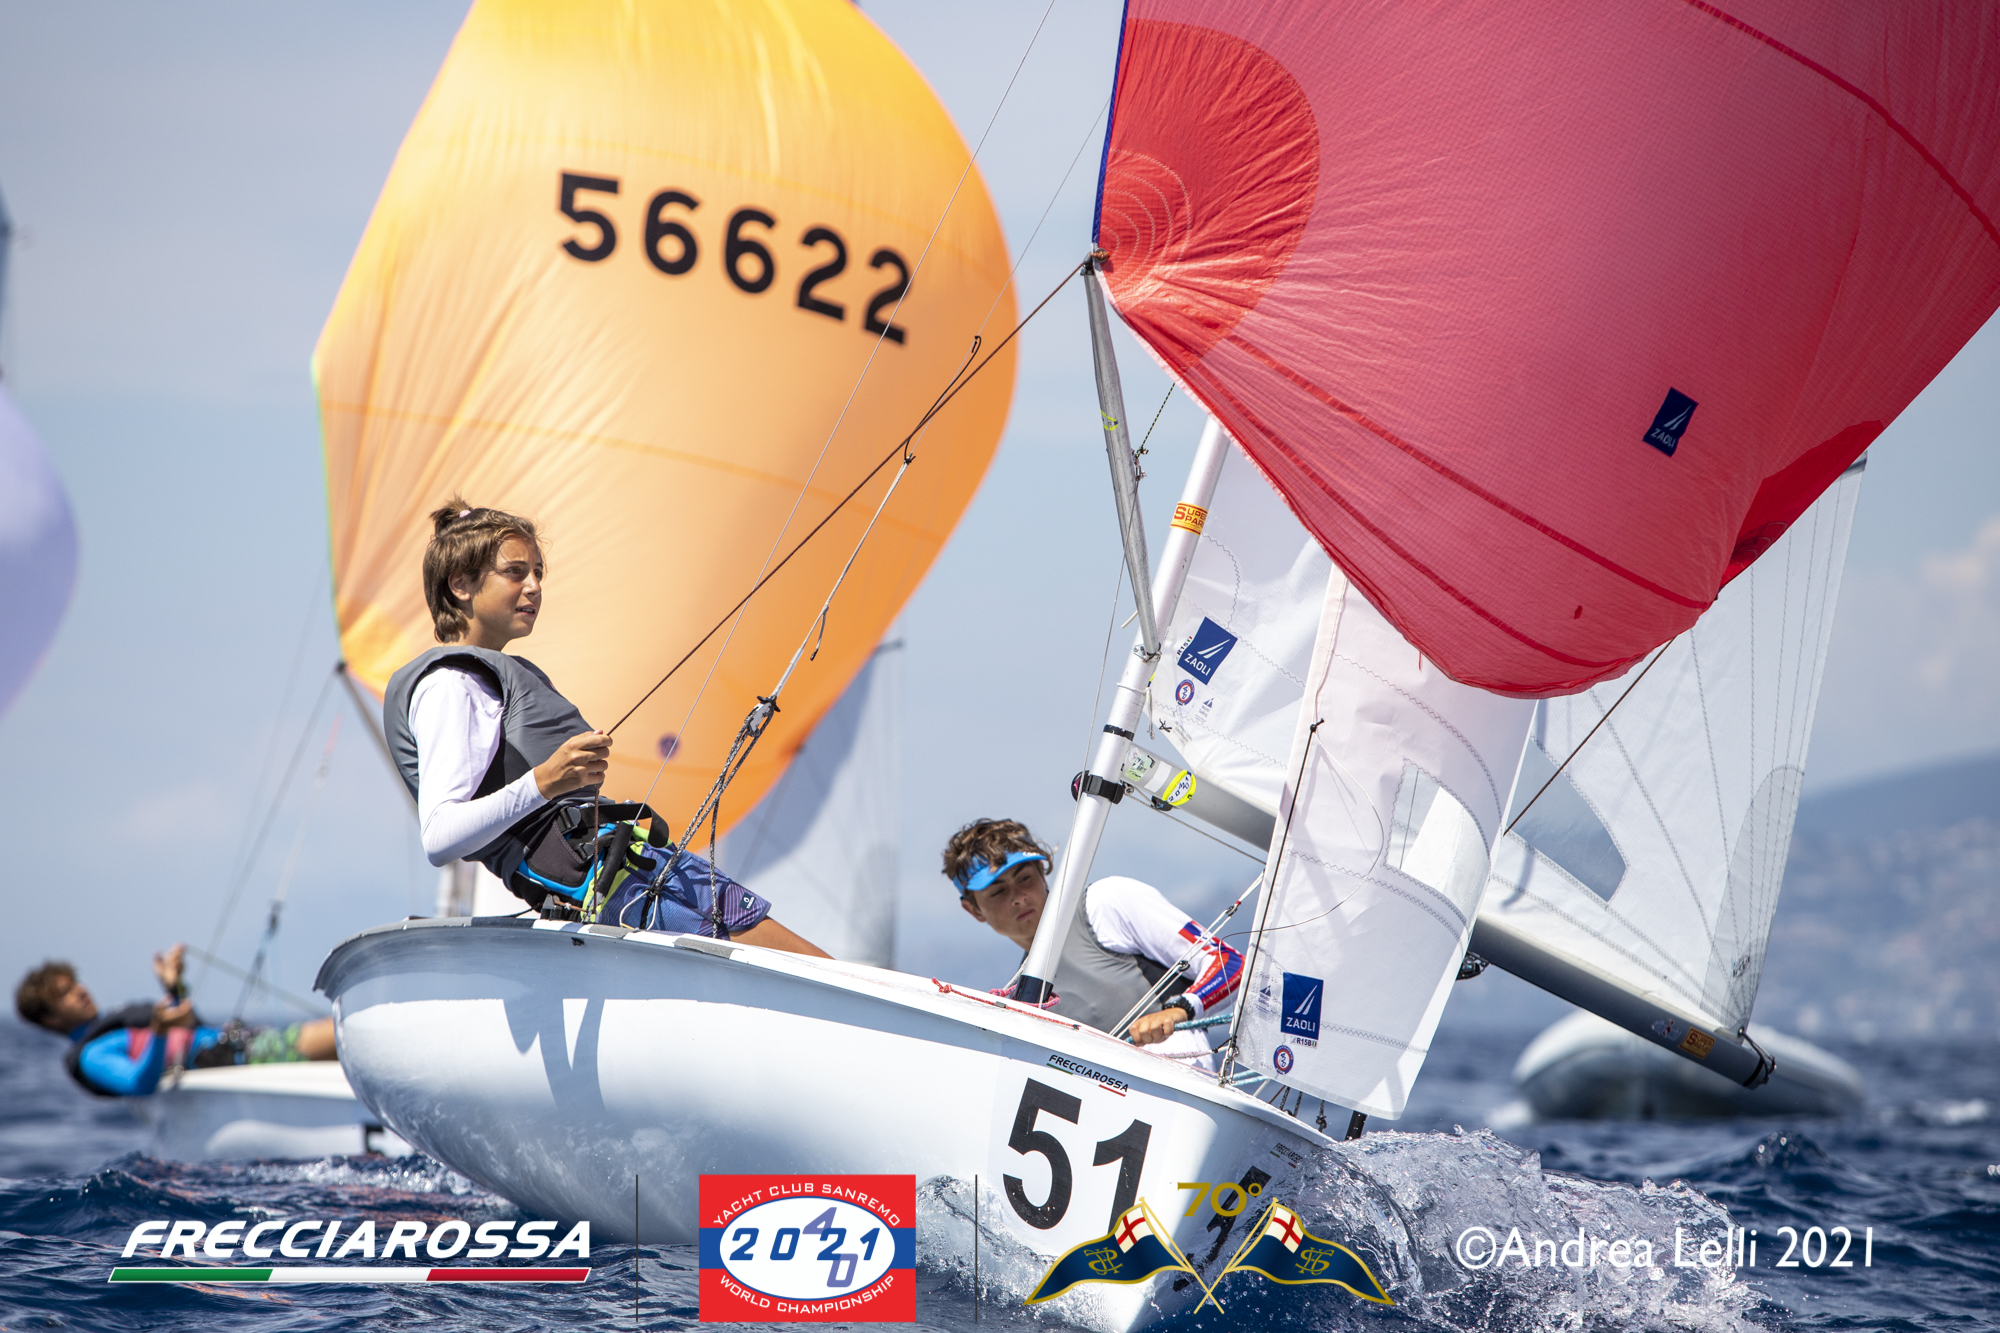 Spectacular fourth day of races at the 2021 Worlds in Sanremo